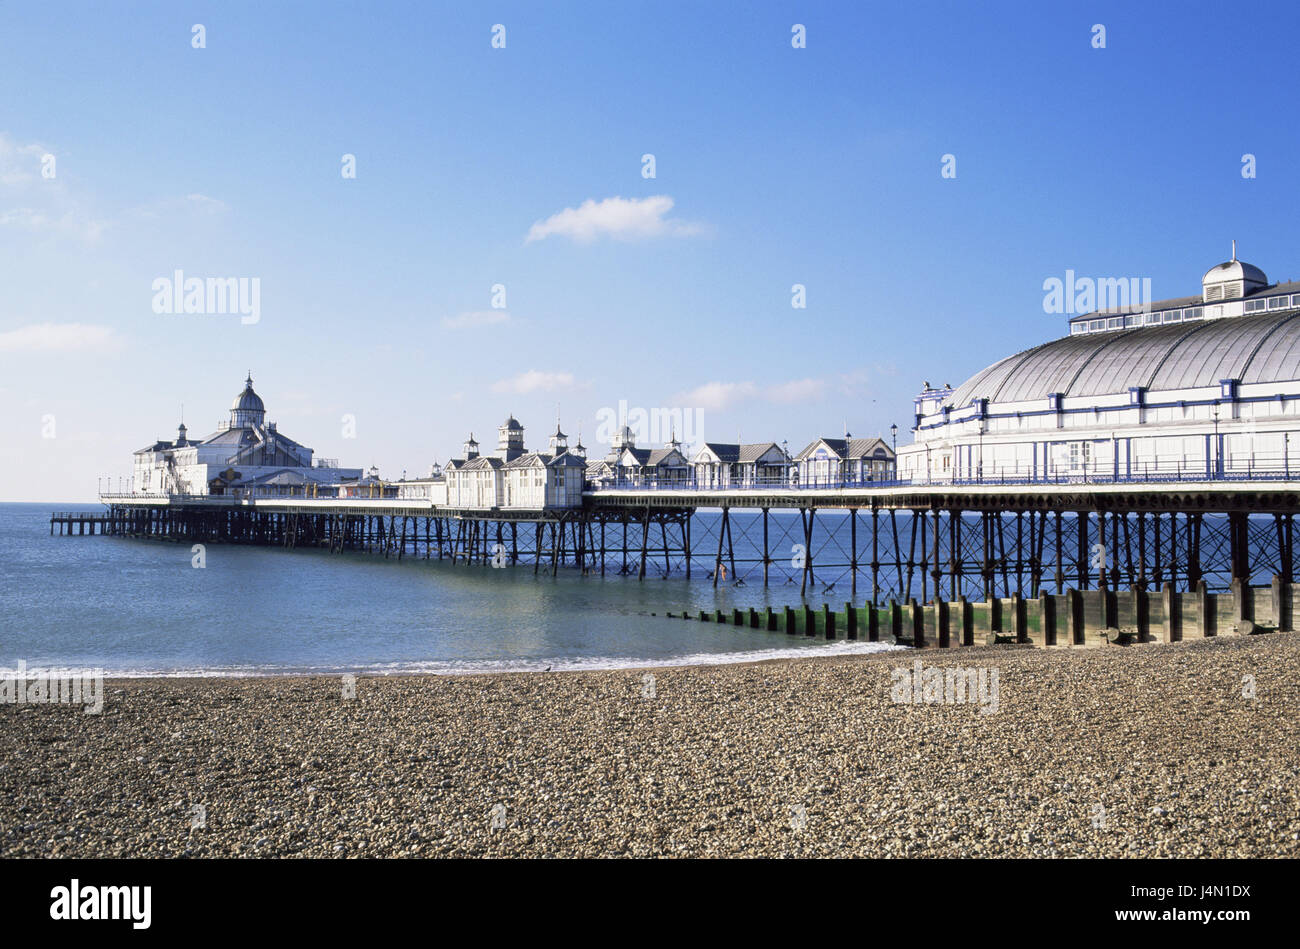 Great Britain, England, Sussex, Eastbourne, sea bridge, restaurants, south narrow country, sea, the Atlantic, pier, - Stock Image